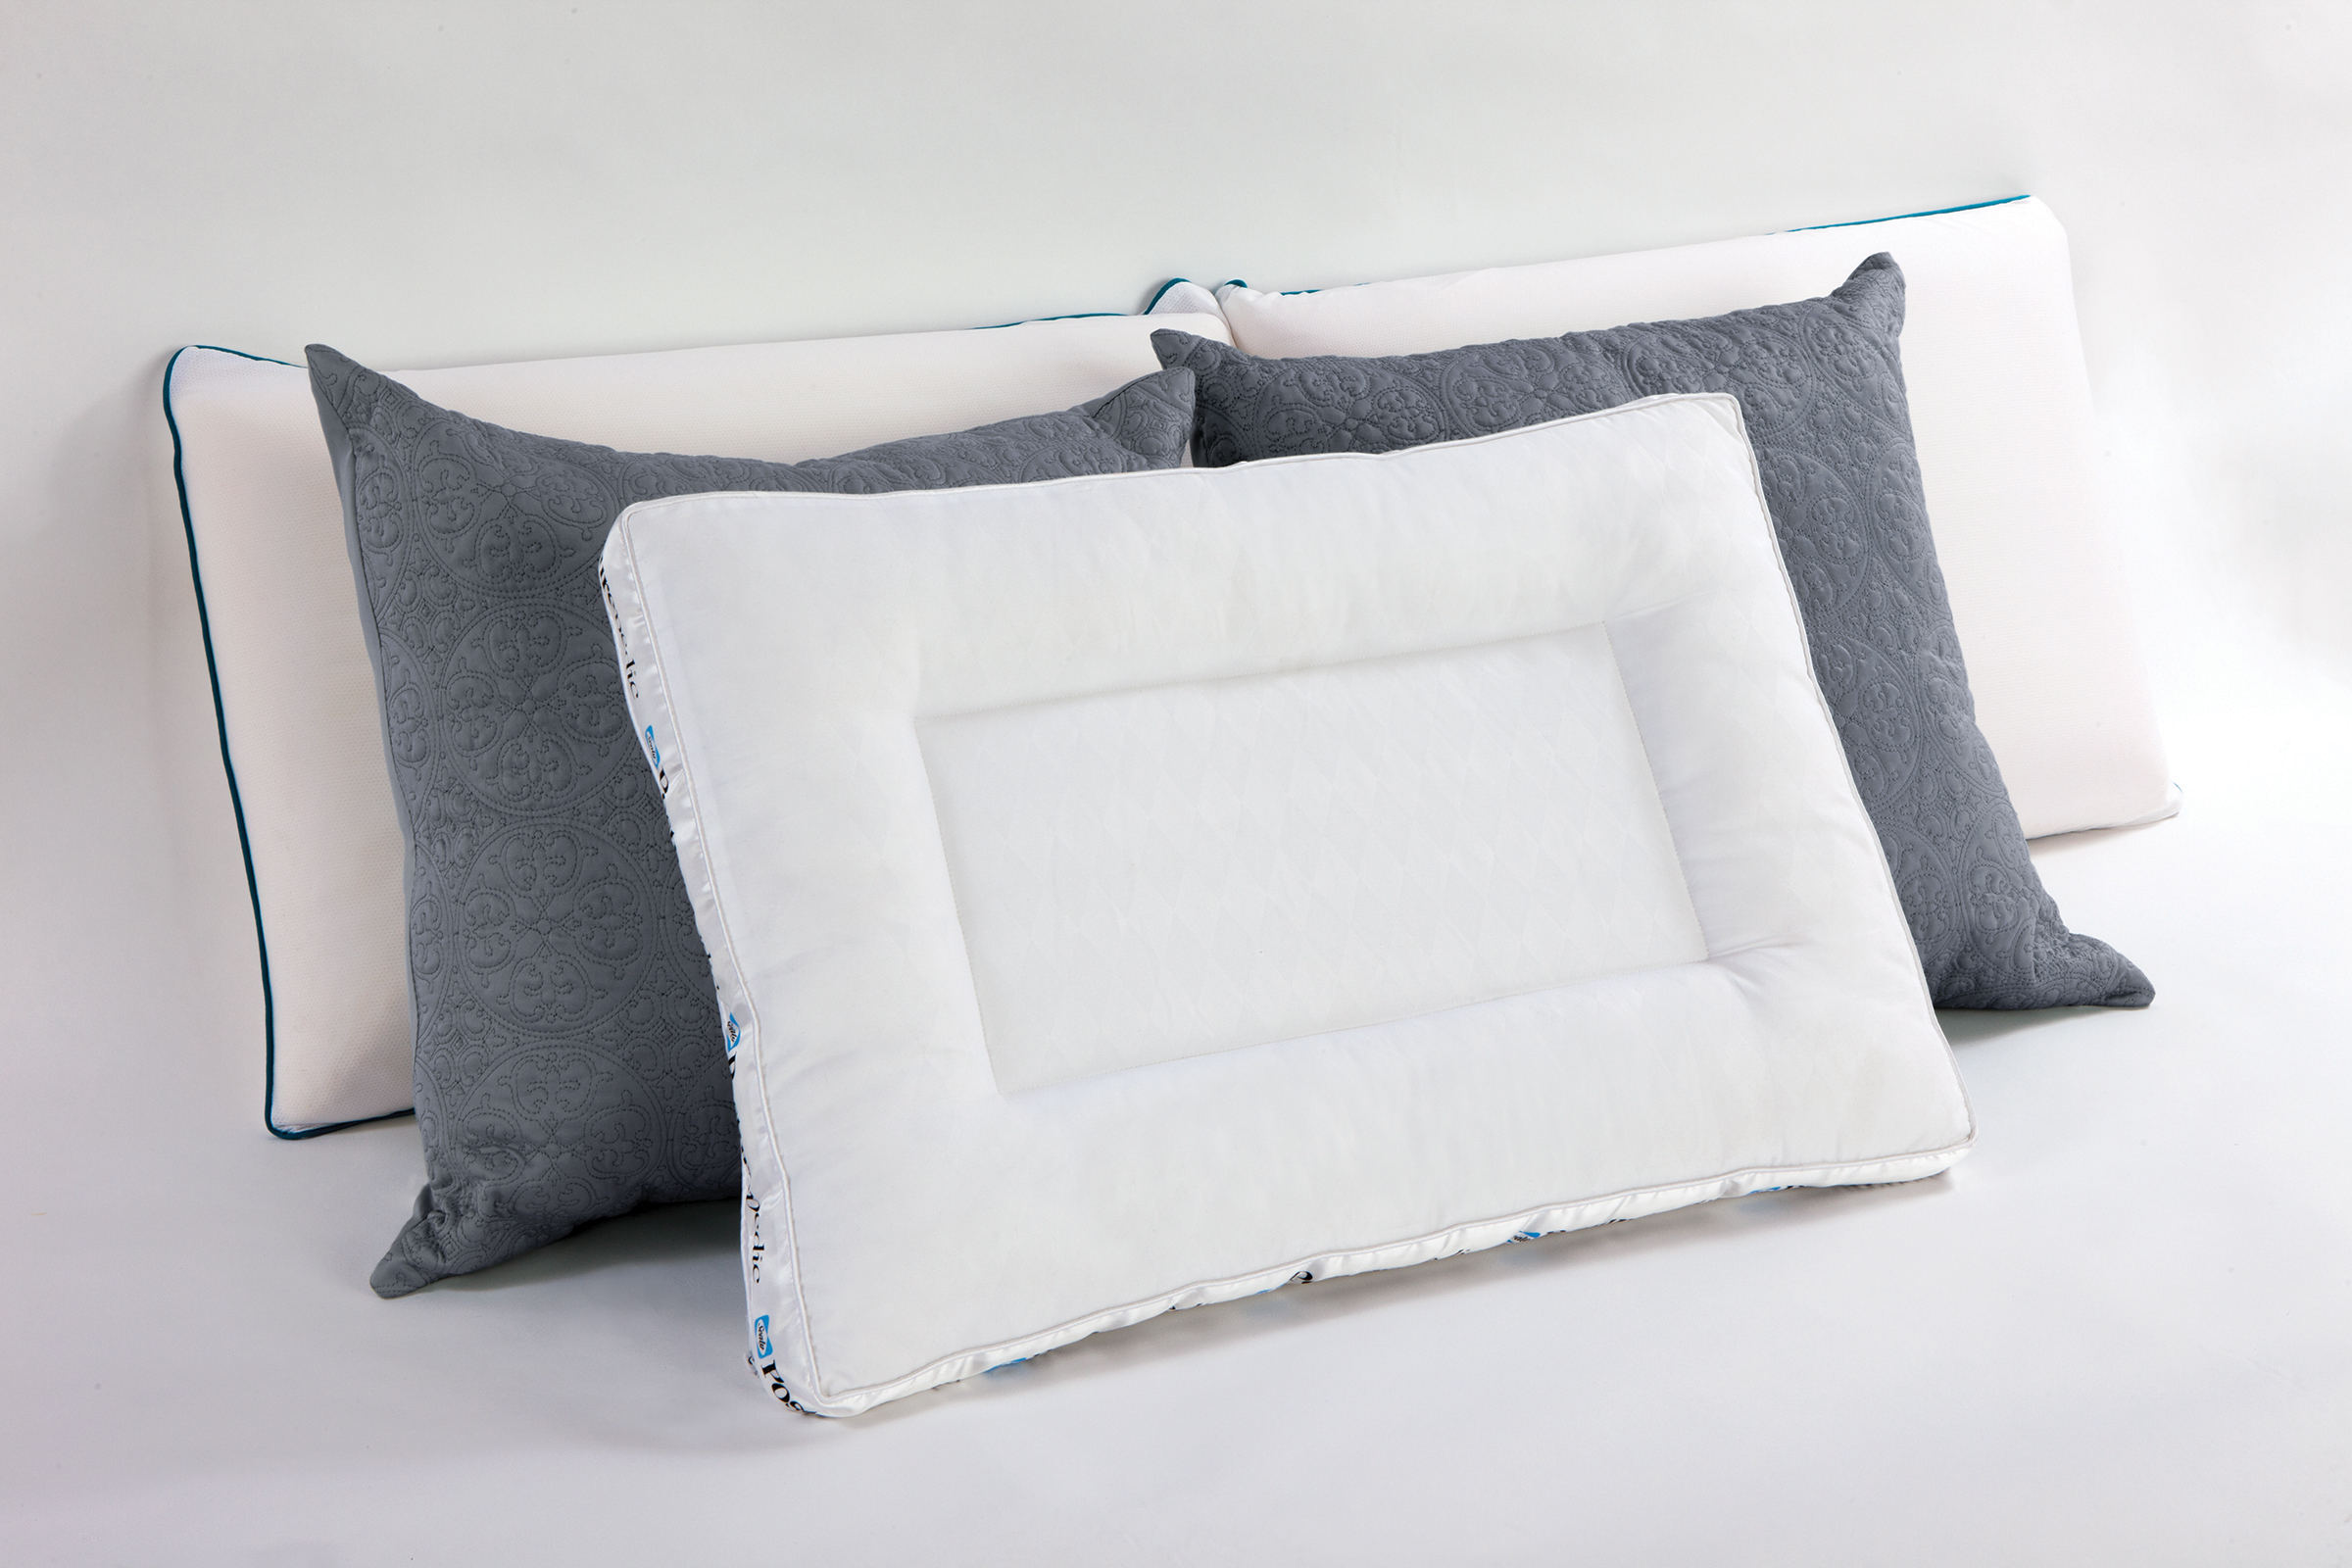 Image of: Sealy Posturepedic Pillows for Neck Pain